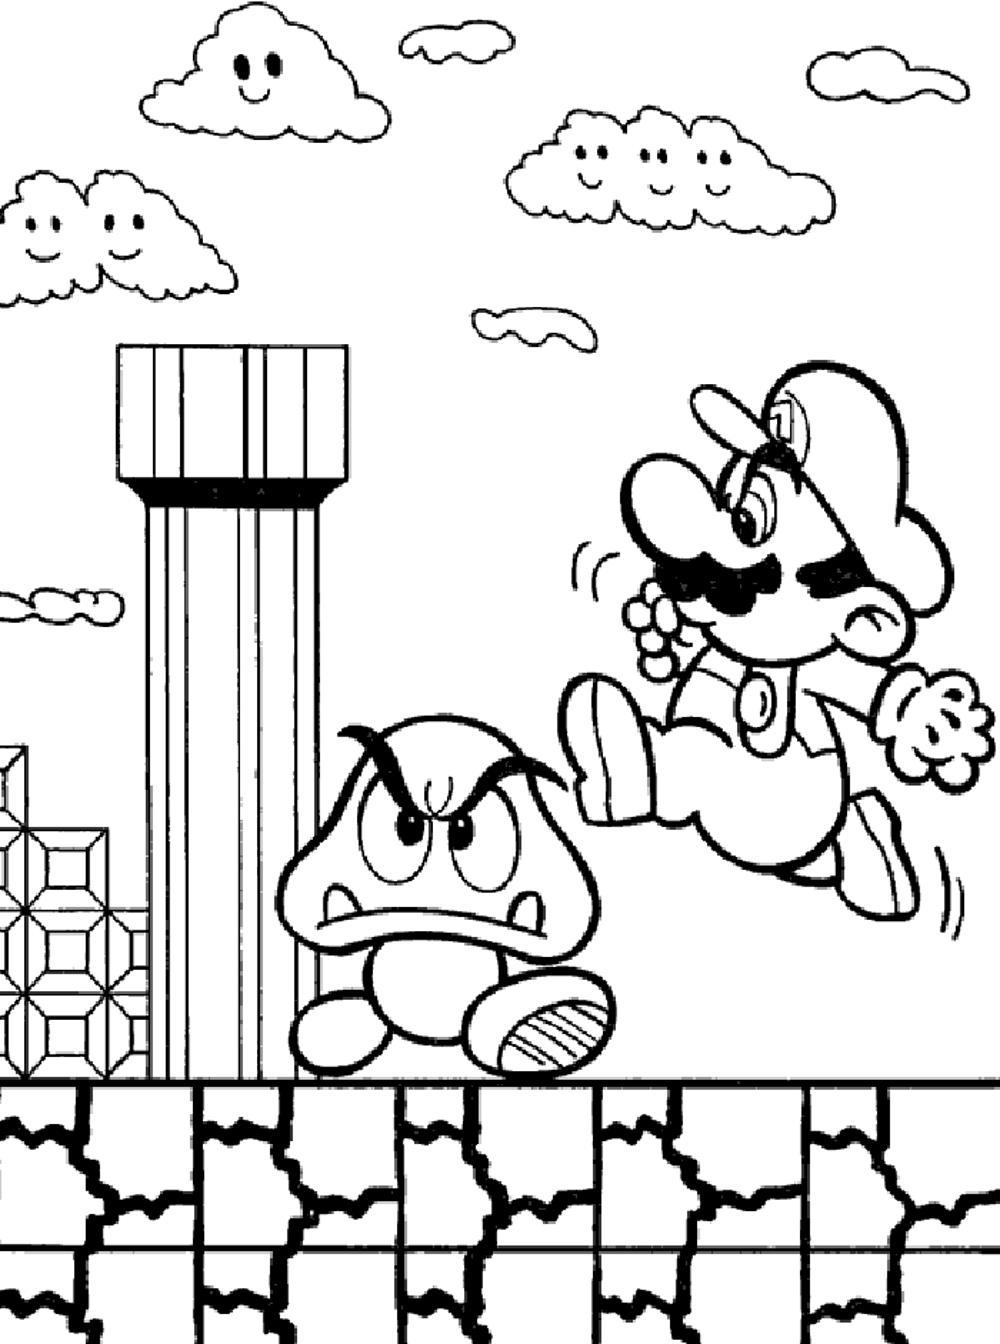 mario-bros-printable-coloring-pages | | BestAppsForKids.com